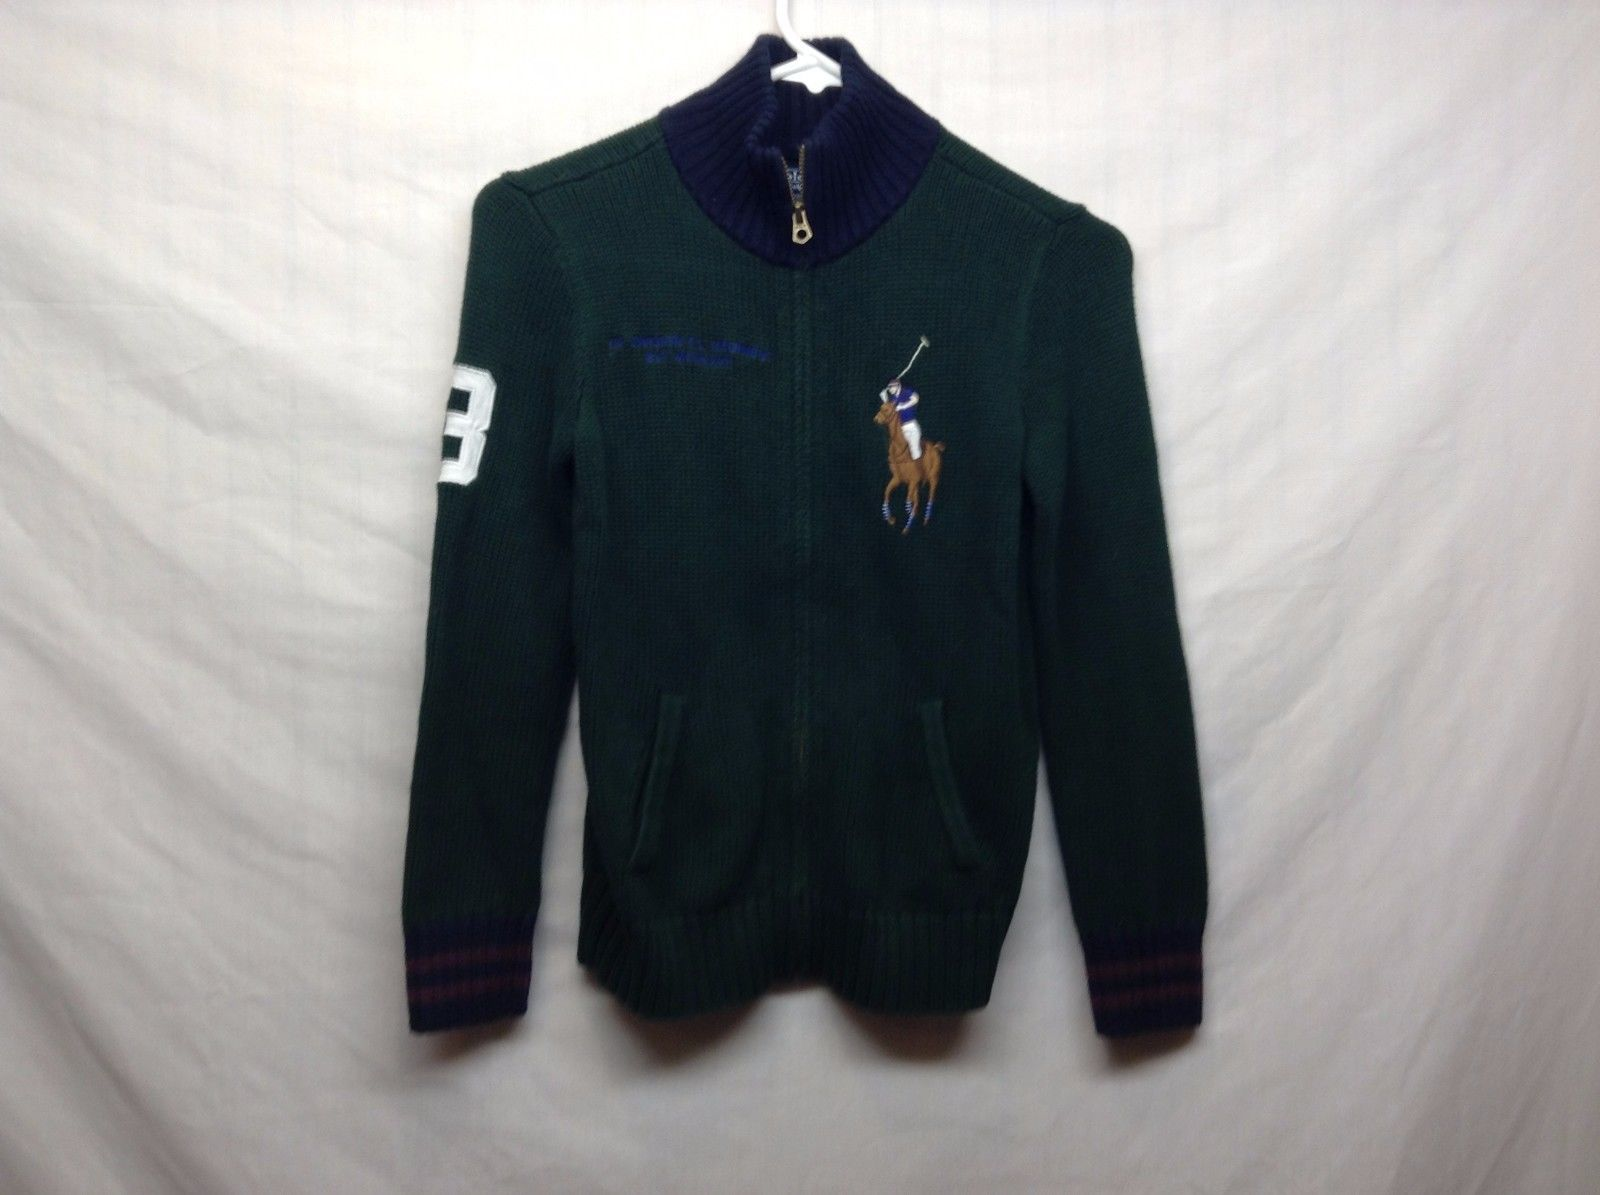 POLO Ralph Lauren Boys Green Blue Maroon Heavy Weight Sweater Sz 8-10